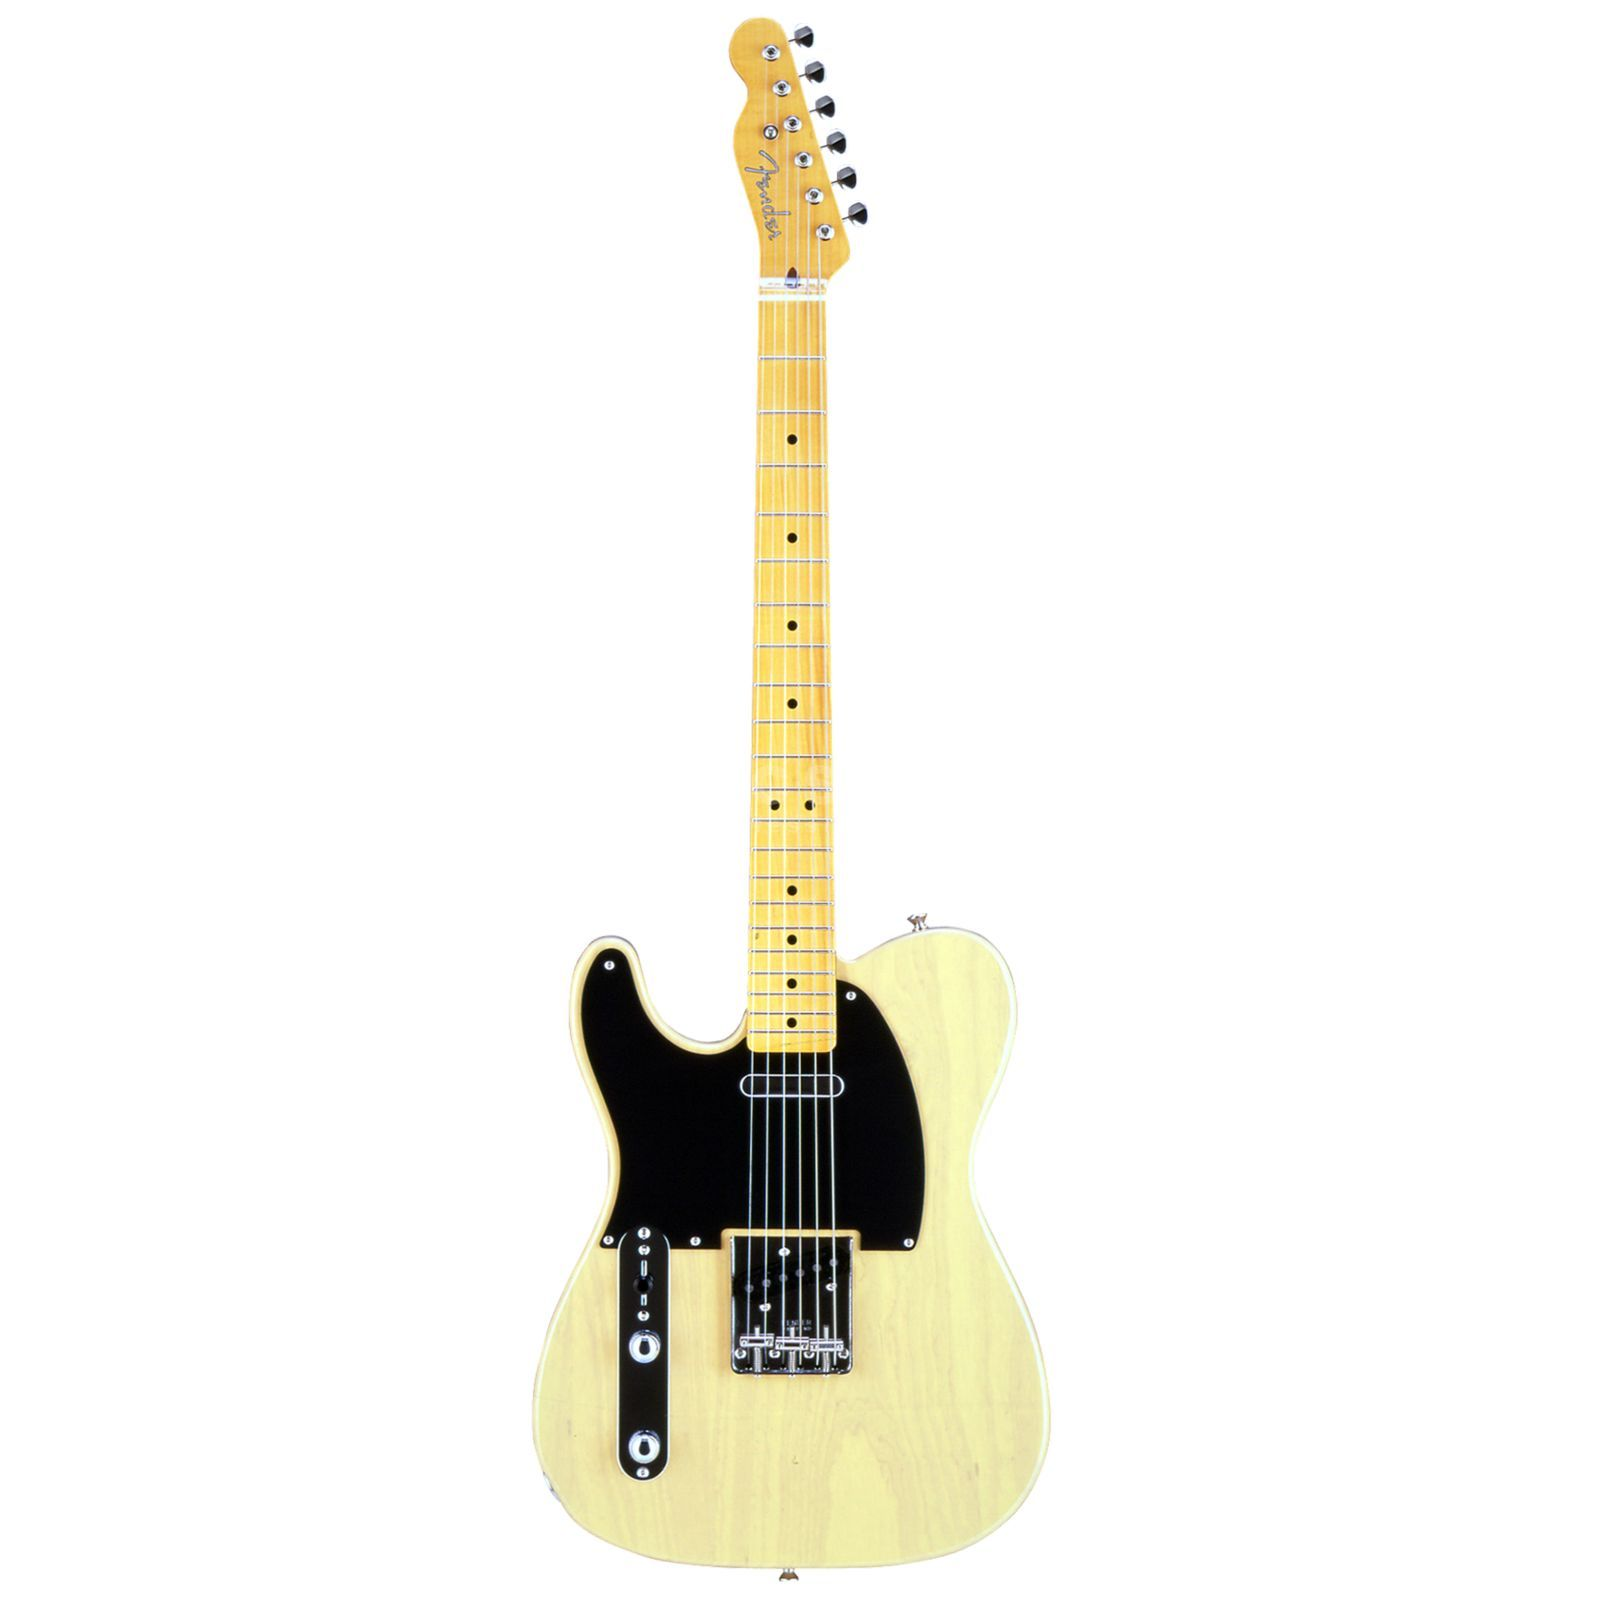 Fender Japan Limited Classic '50s Telecaster MN Lefthand Off-White Blonde Изображение товара